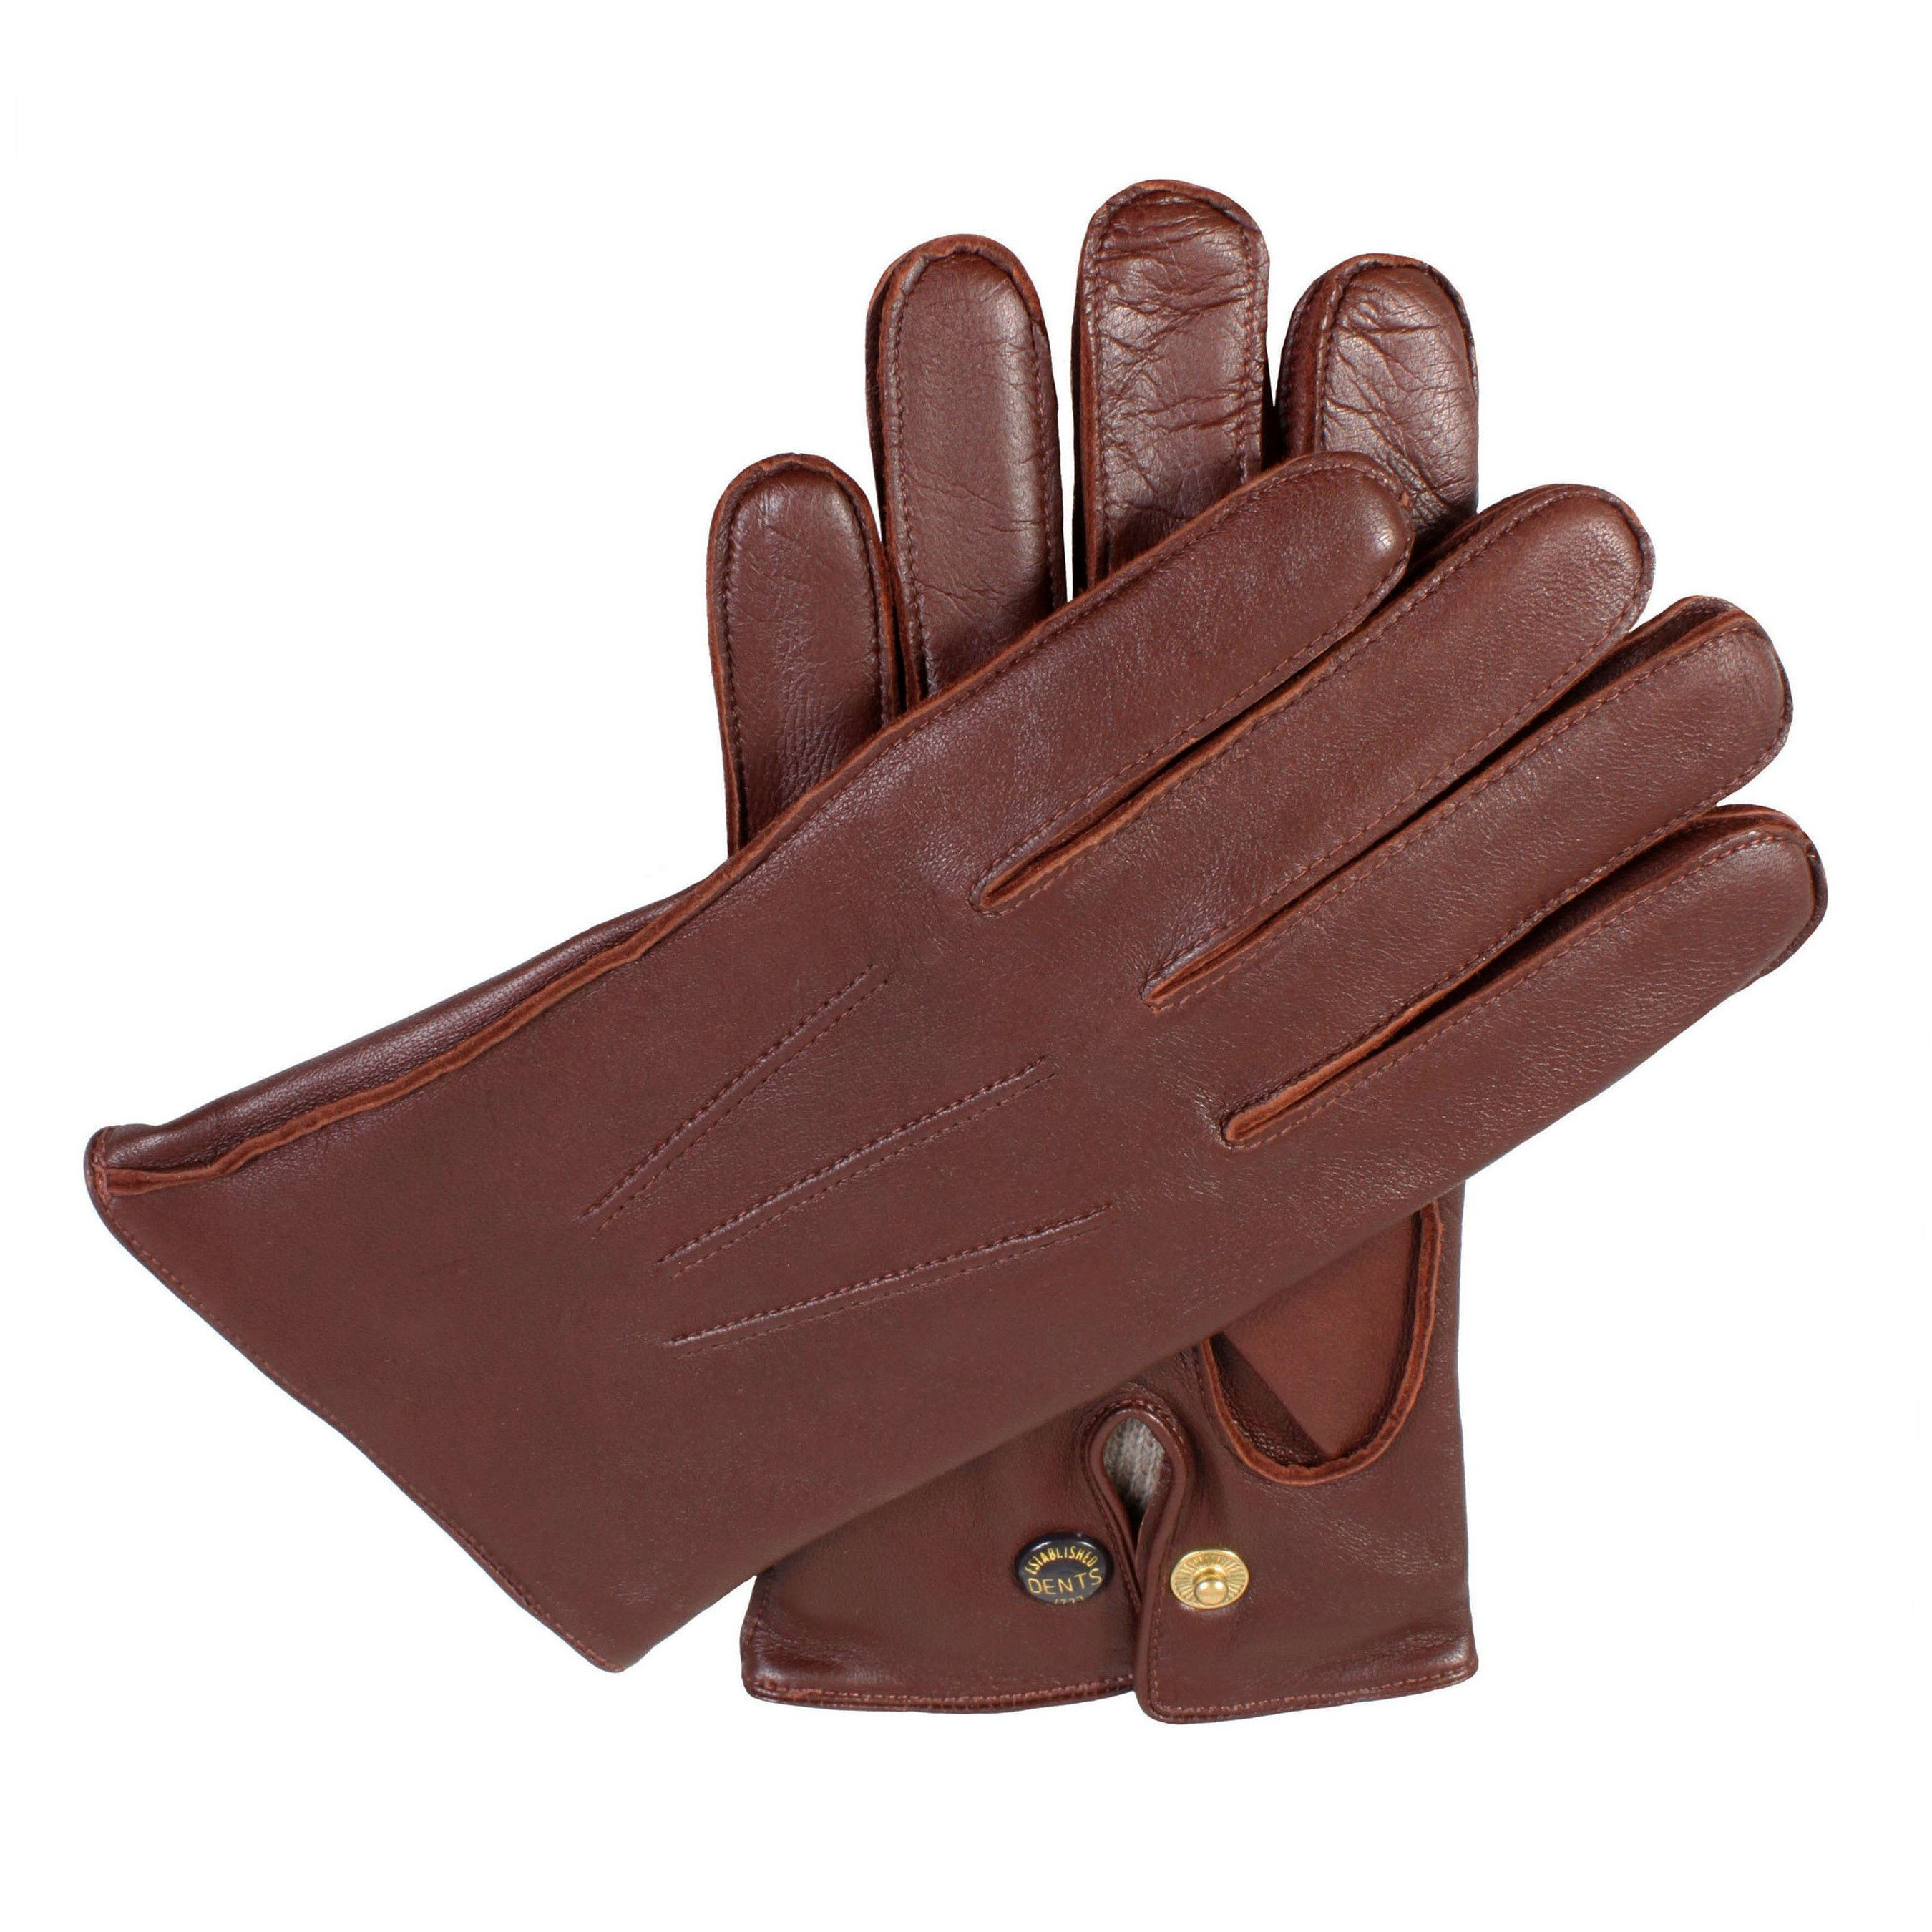 Dents Dents Mens leather gloves with wool lining, Tan